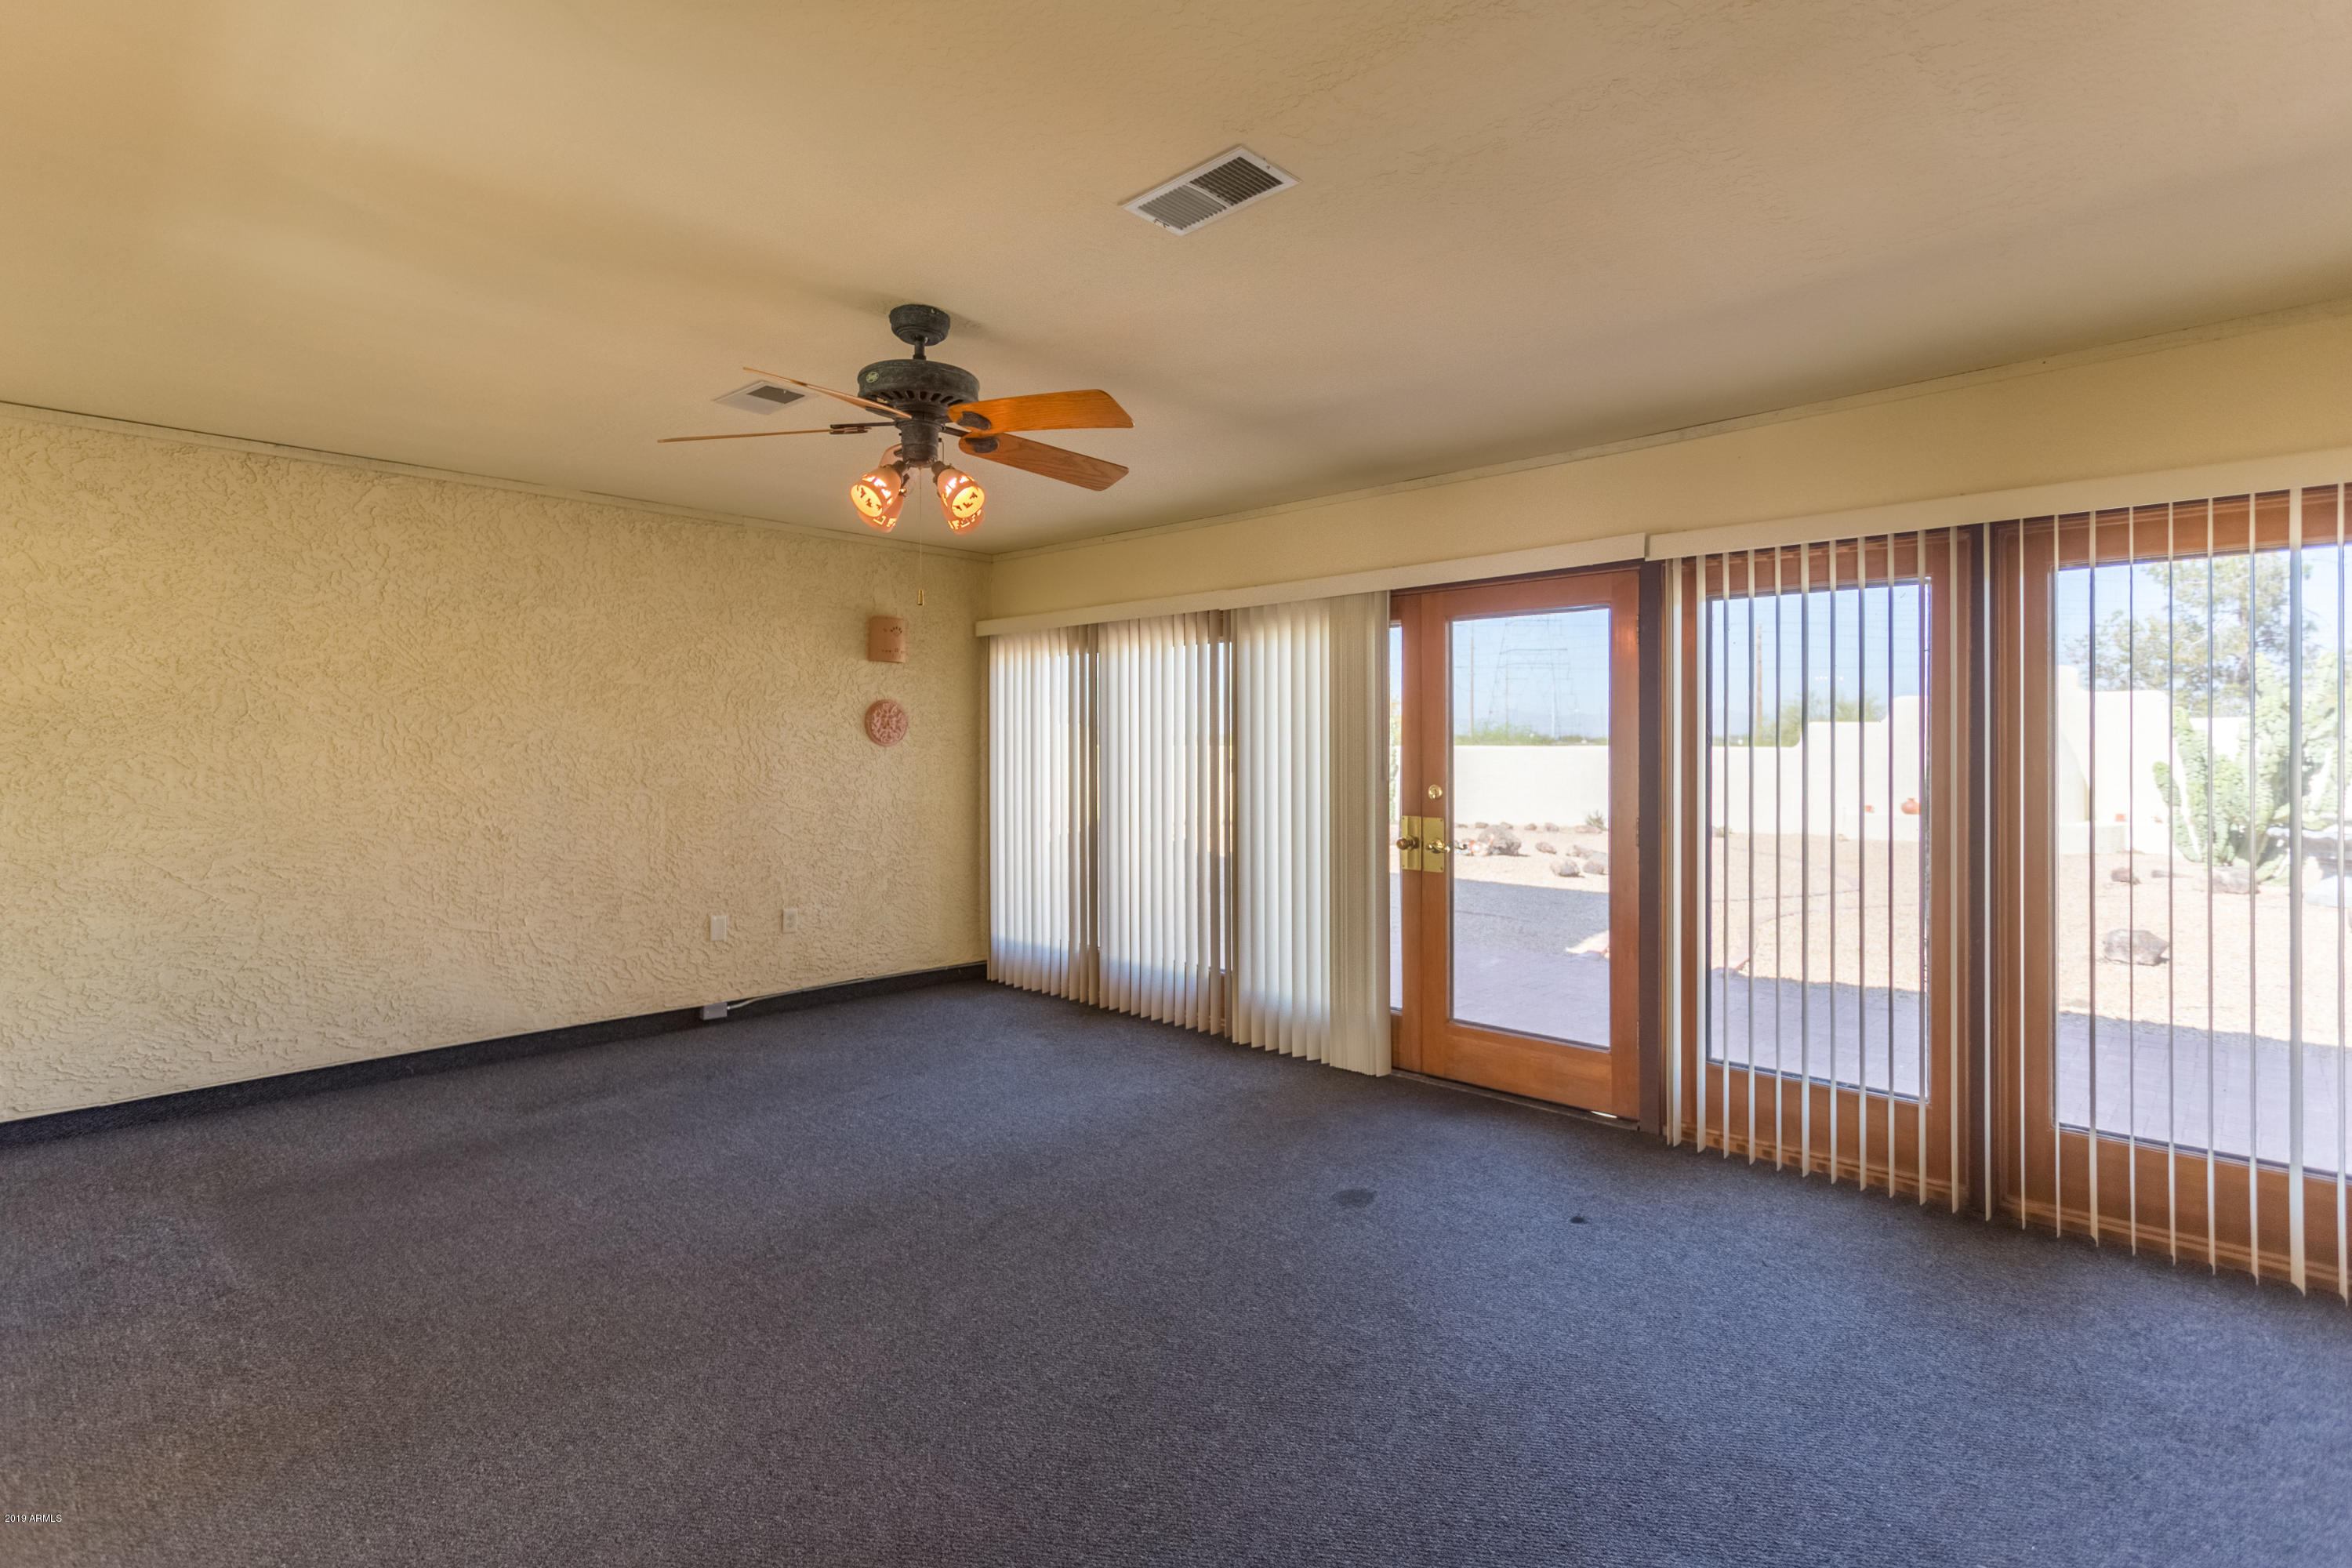 MLS 5904536 9330 N 111TH Drive, Sun City, AZ 85351 Sun City AZ Adult Community